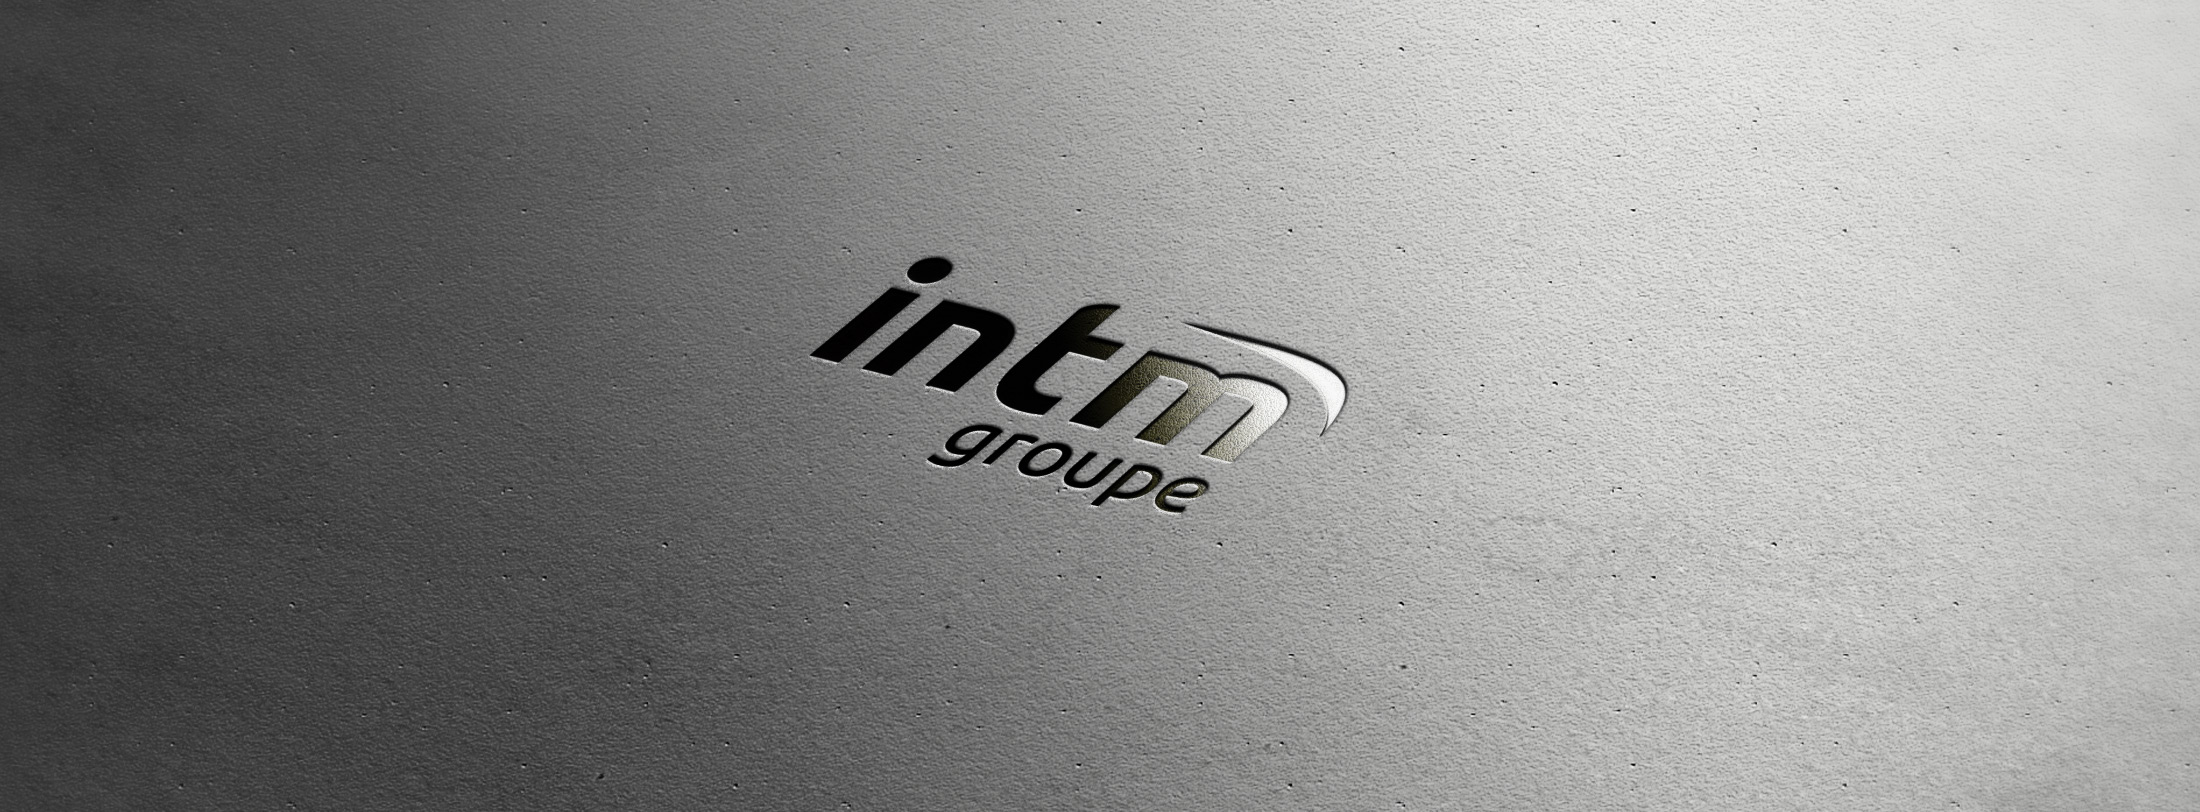 INTM-osb-communication-identite-branding-logo-mokup